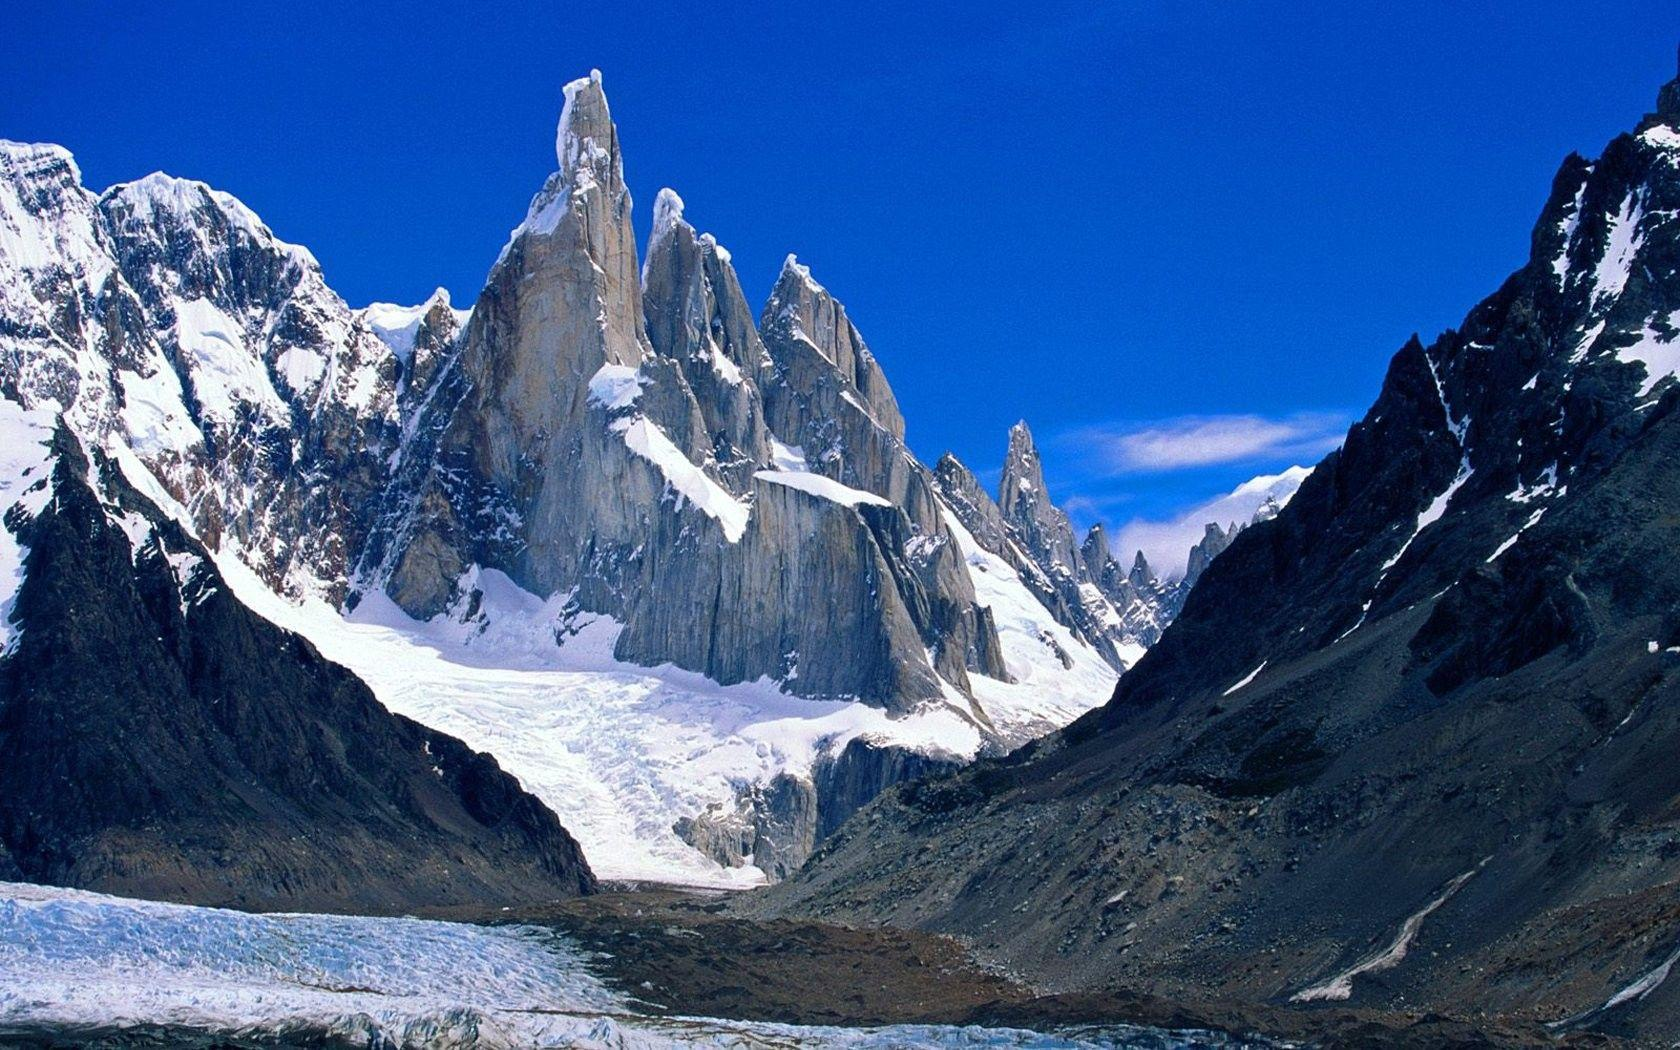 Fitz Tag wallpapers: Fitzroy National Park Argentina Fitz Roy Snow